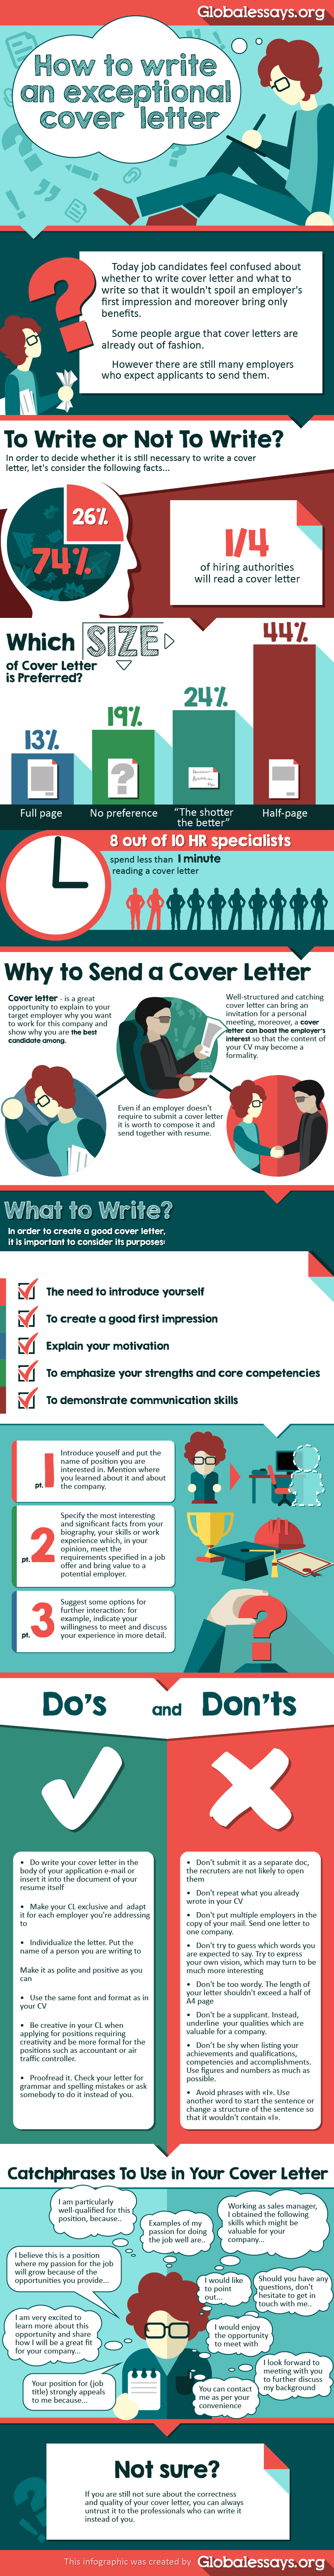 Infographic how to write an exceptional cover letter designtaxi infographic how to write an exceptional cover letter madrichimfo Images